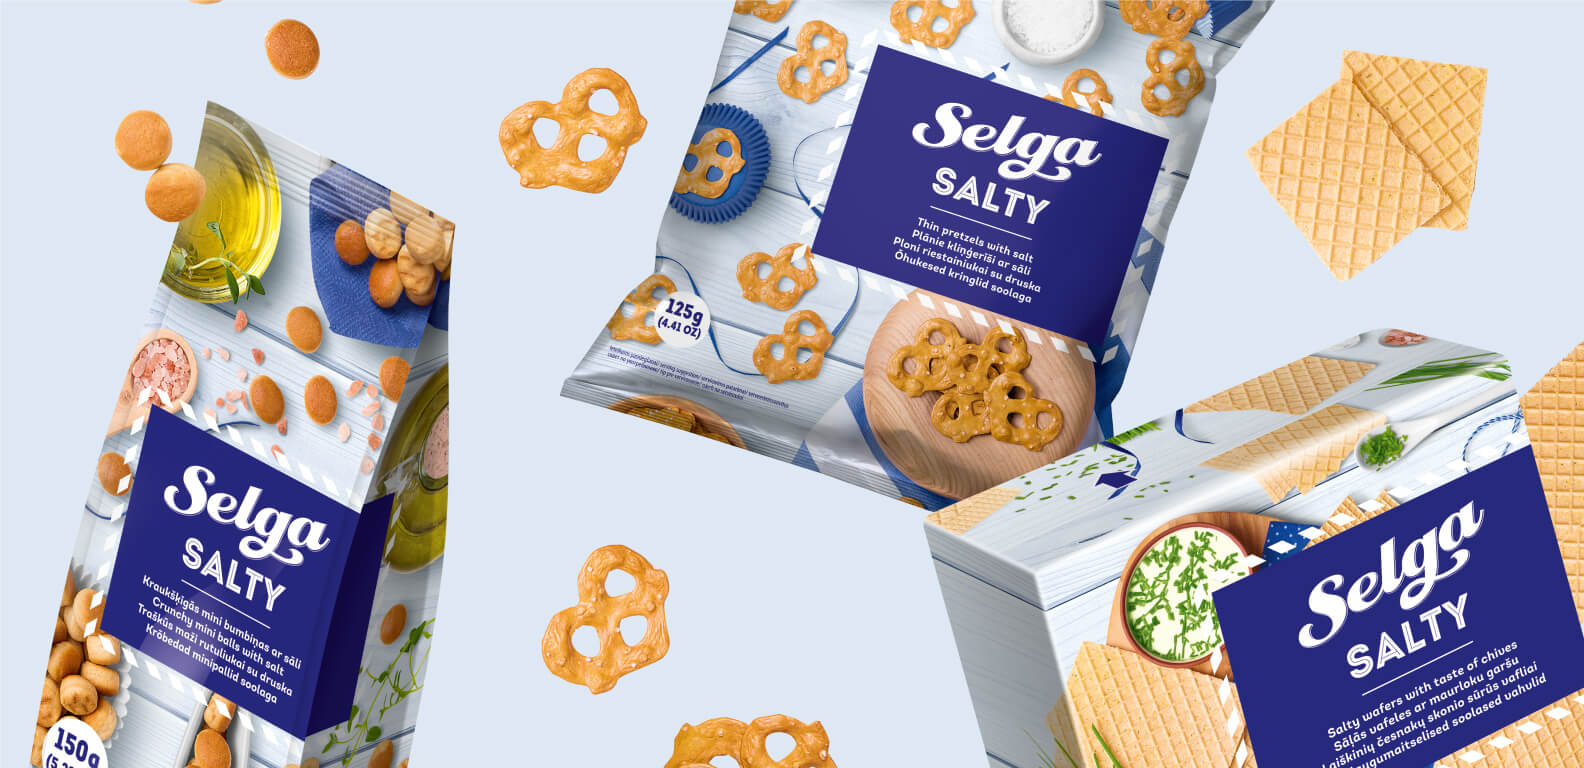 Selga Salty - packaging design